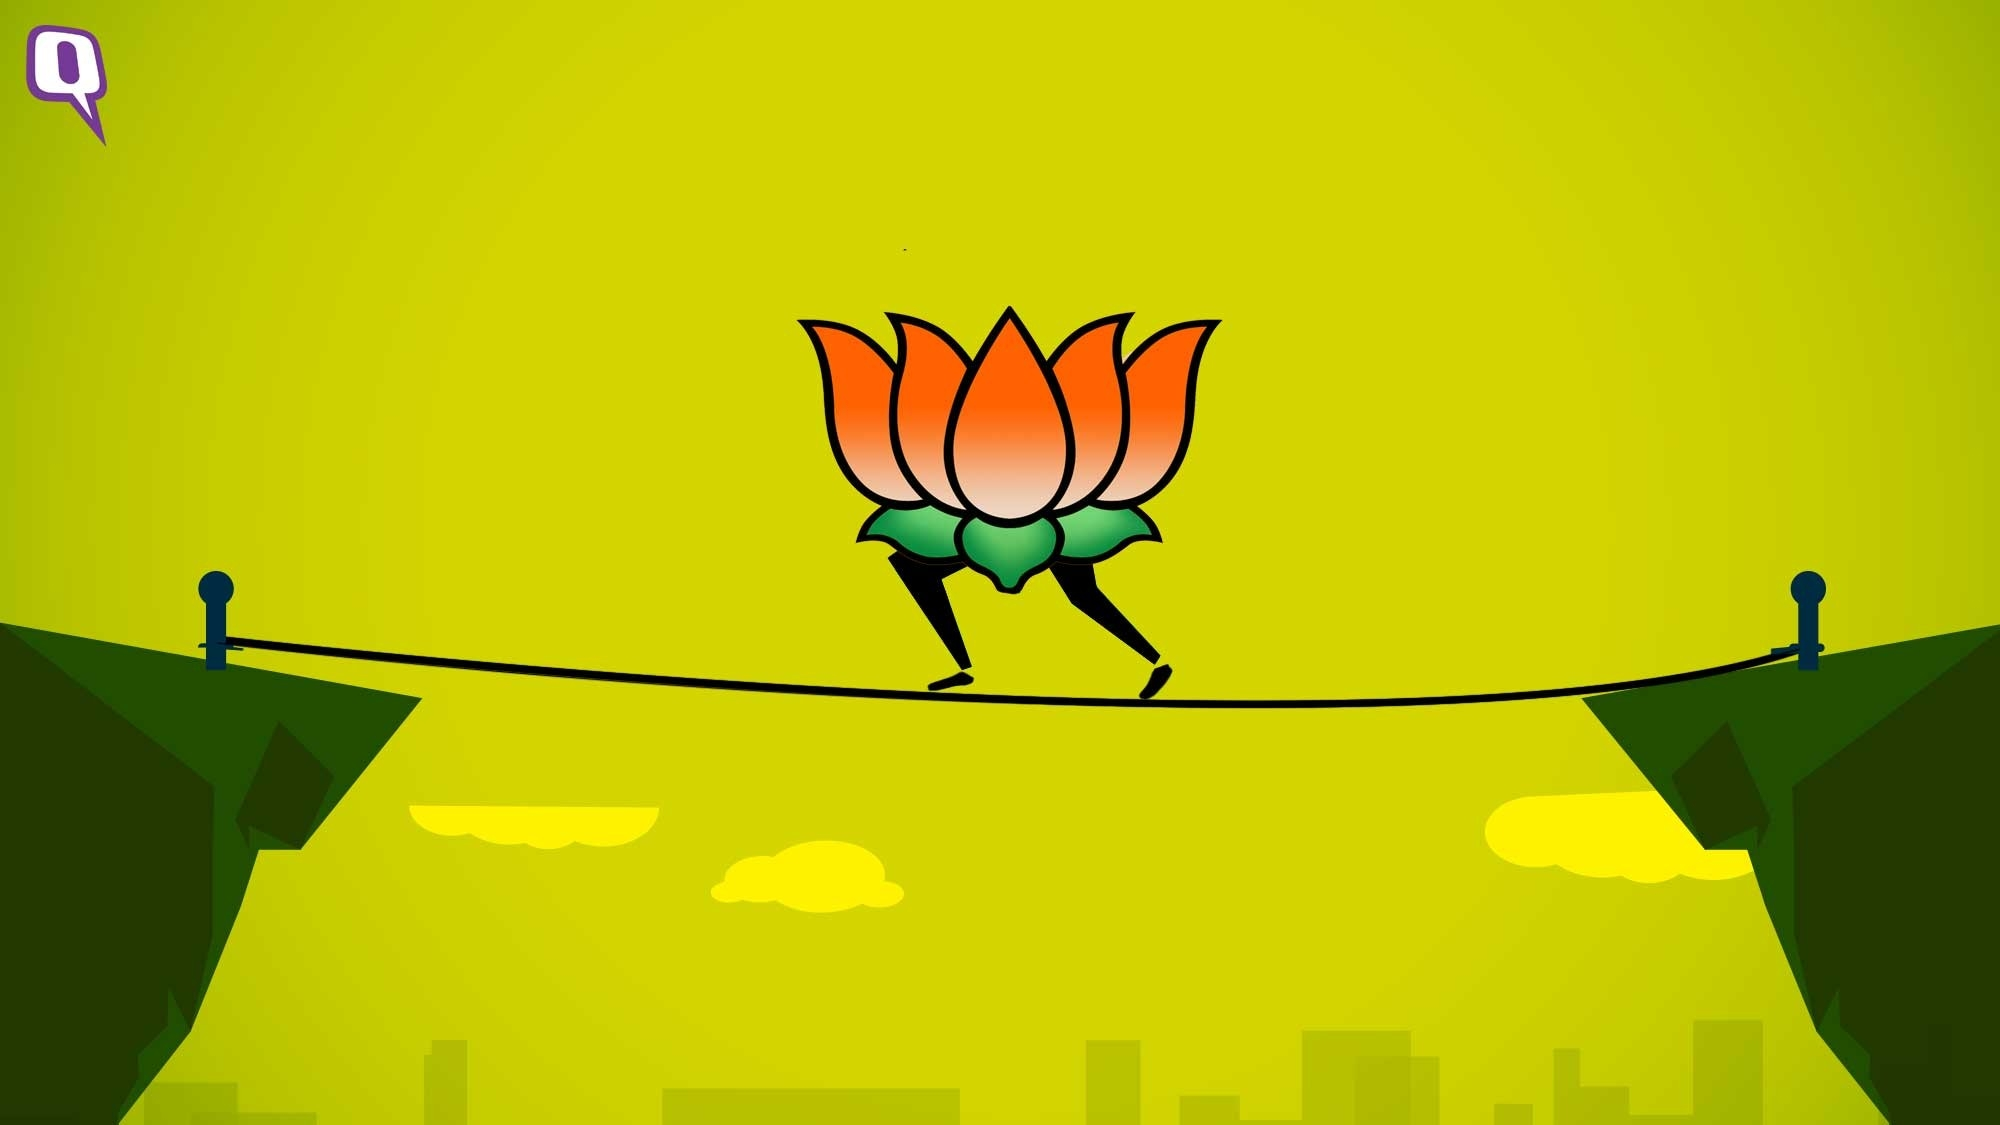 The BJP's Real Game Plan for 2019 Election: Mission 543